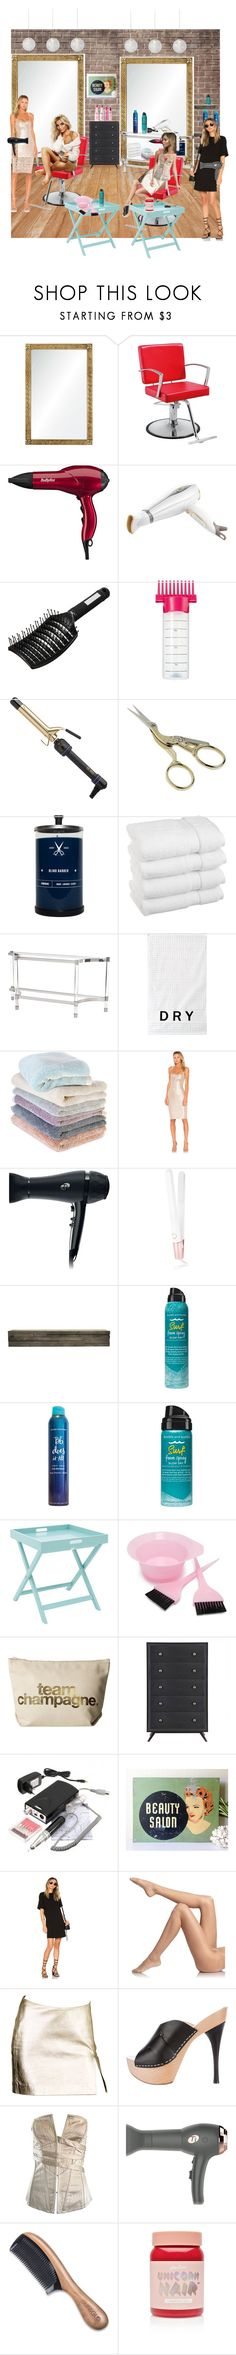 """""""Hair salon"""" by vegas777 ❤ liked on Polyvore featuring beauty, Barclay Butera, BaByliss, Nicky Clarke, Hot Tools, HAY, Blind Barber, Bernhardt, DKNY and Sefte"""